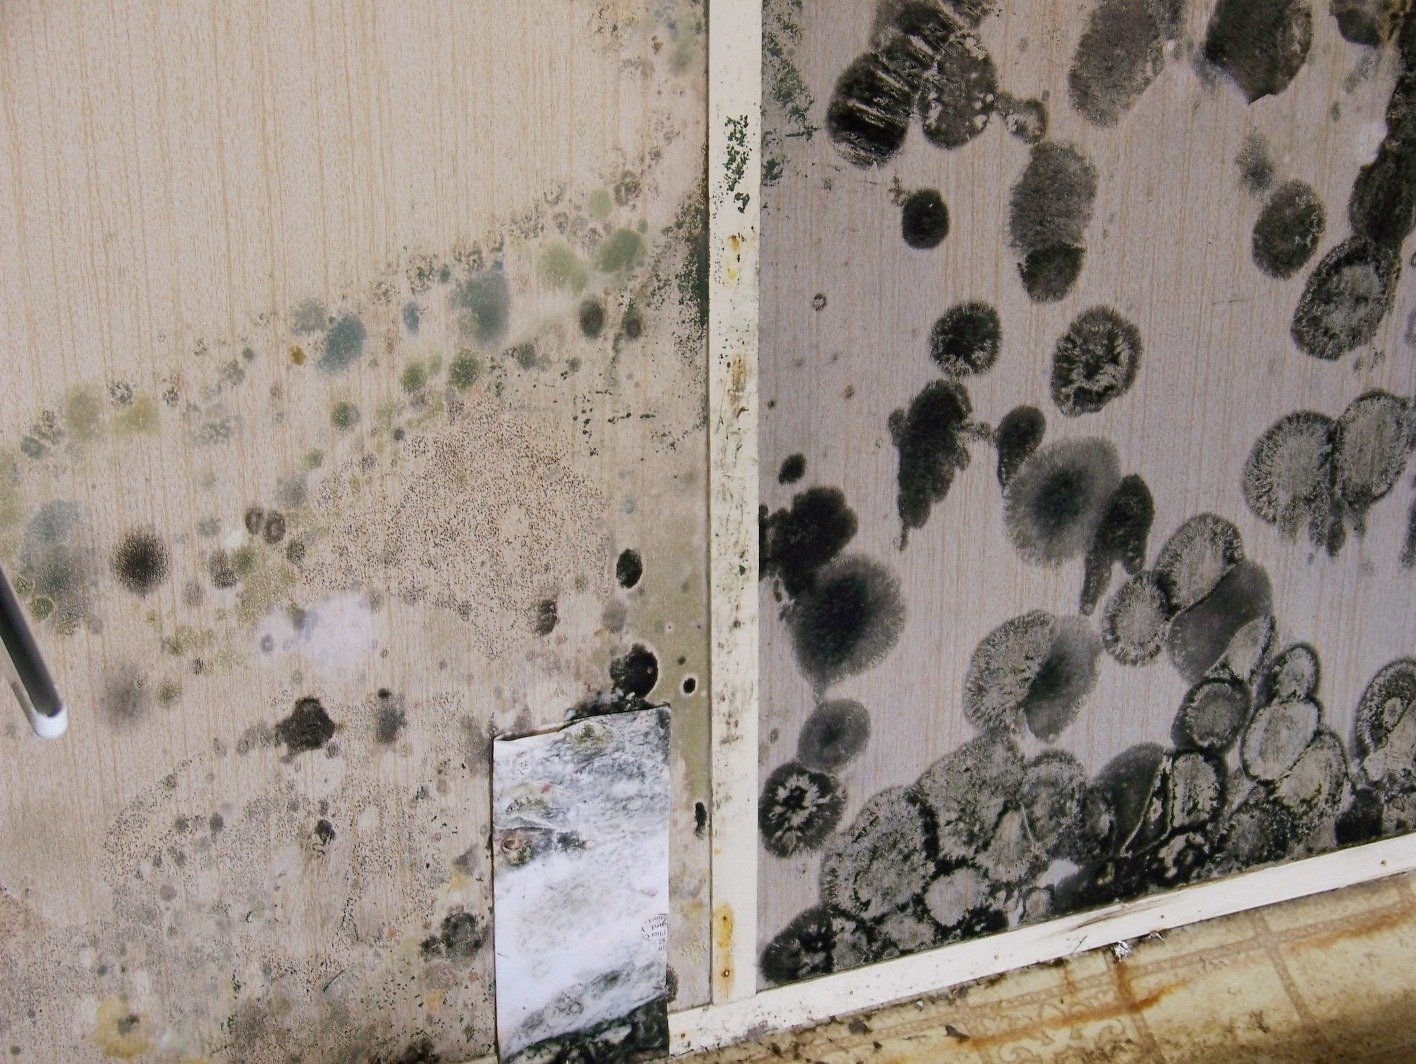 How to identify black mold - Black Mold On Walls